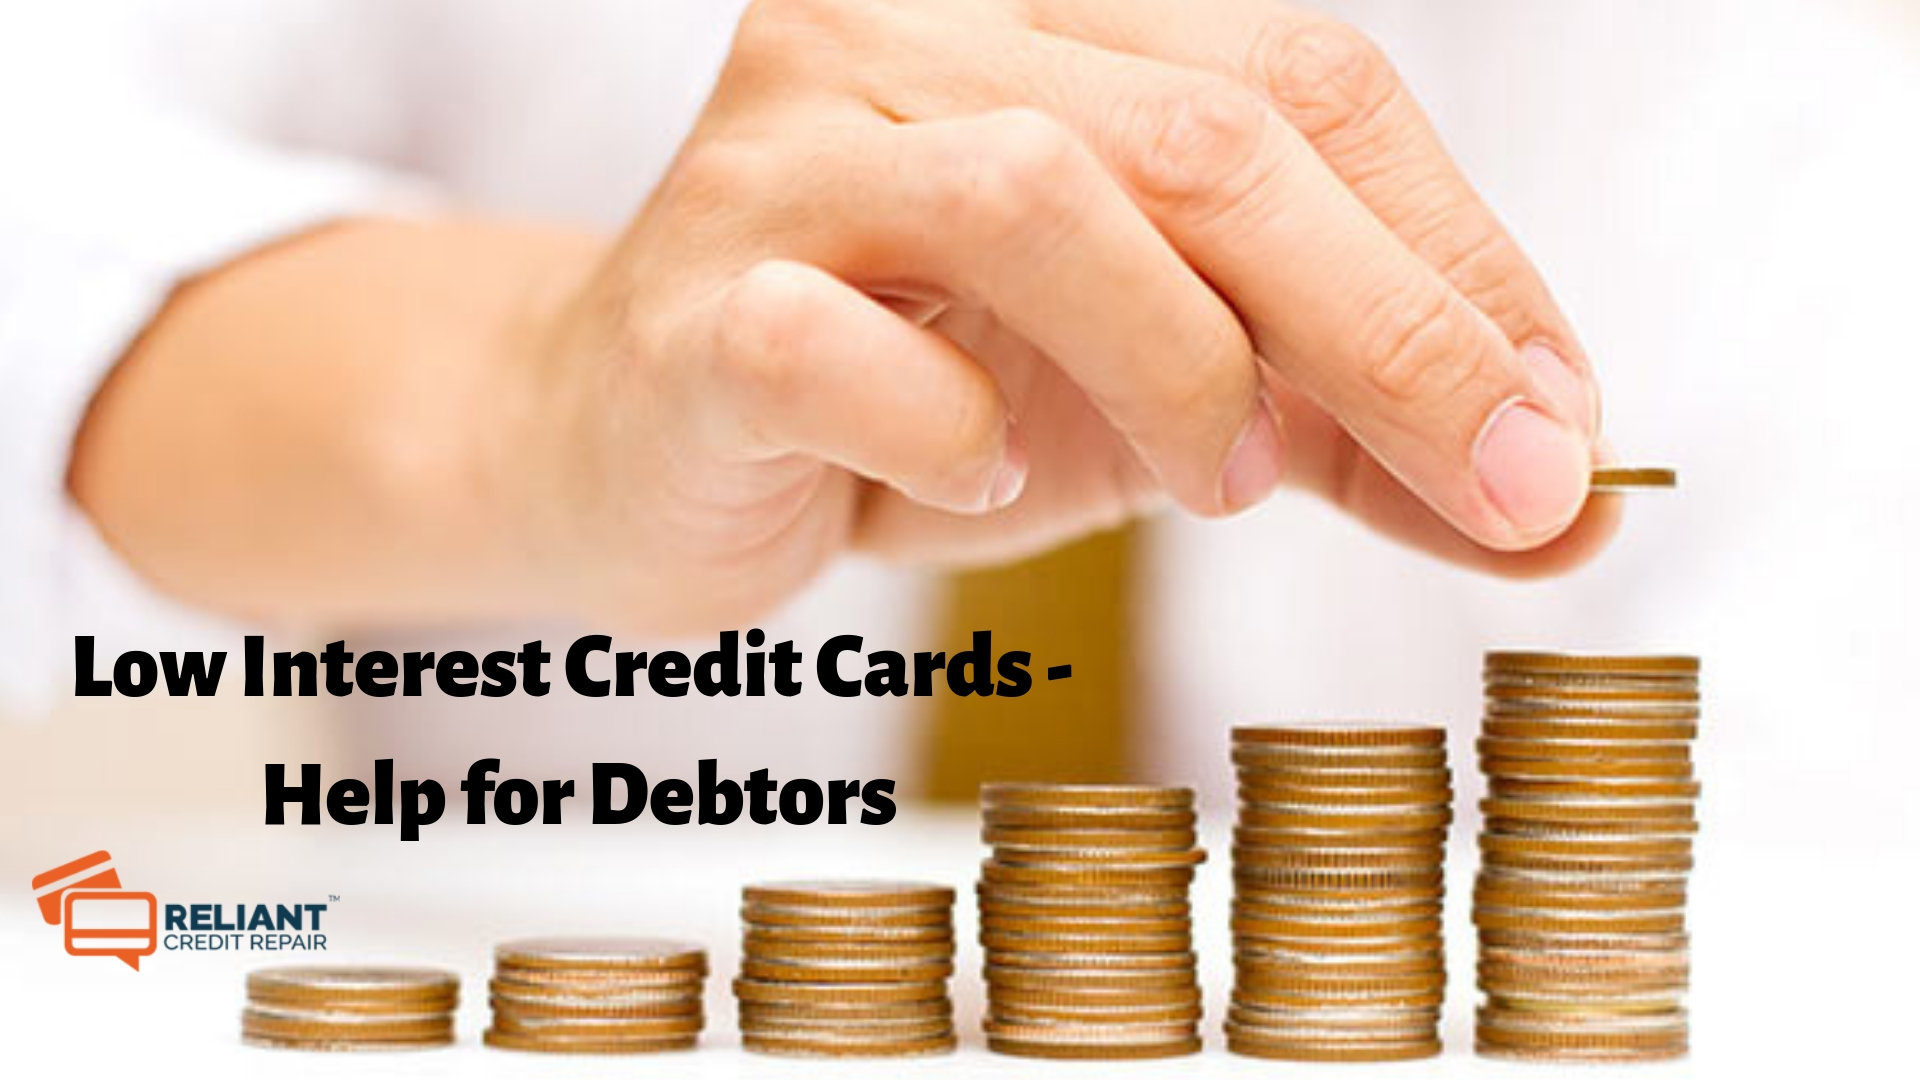 Low Interest Credit Cards - Help for Debtors